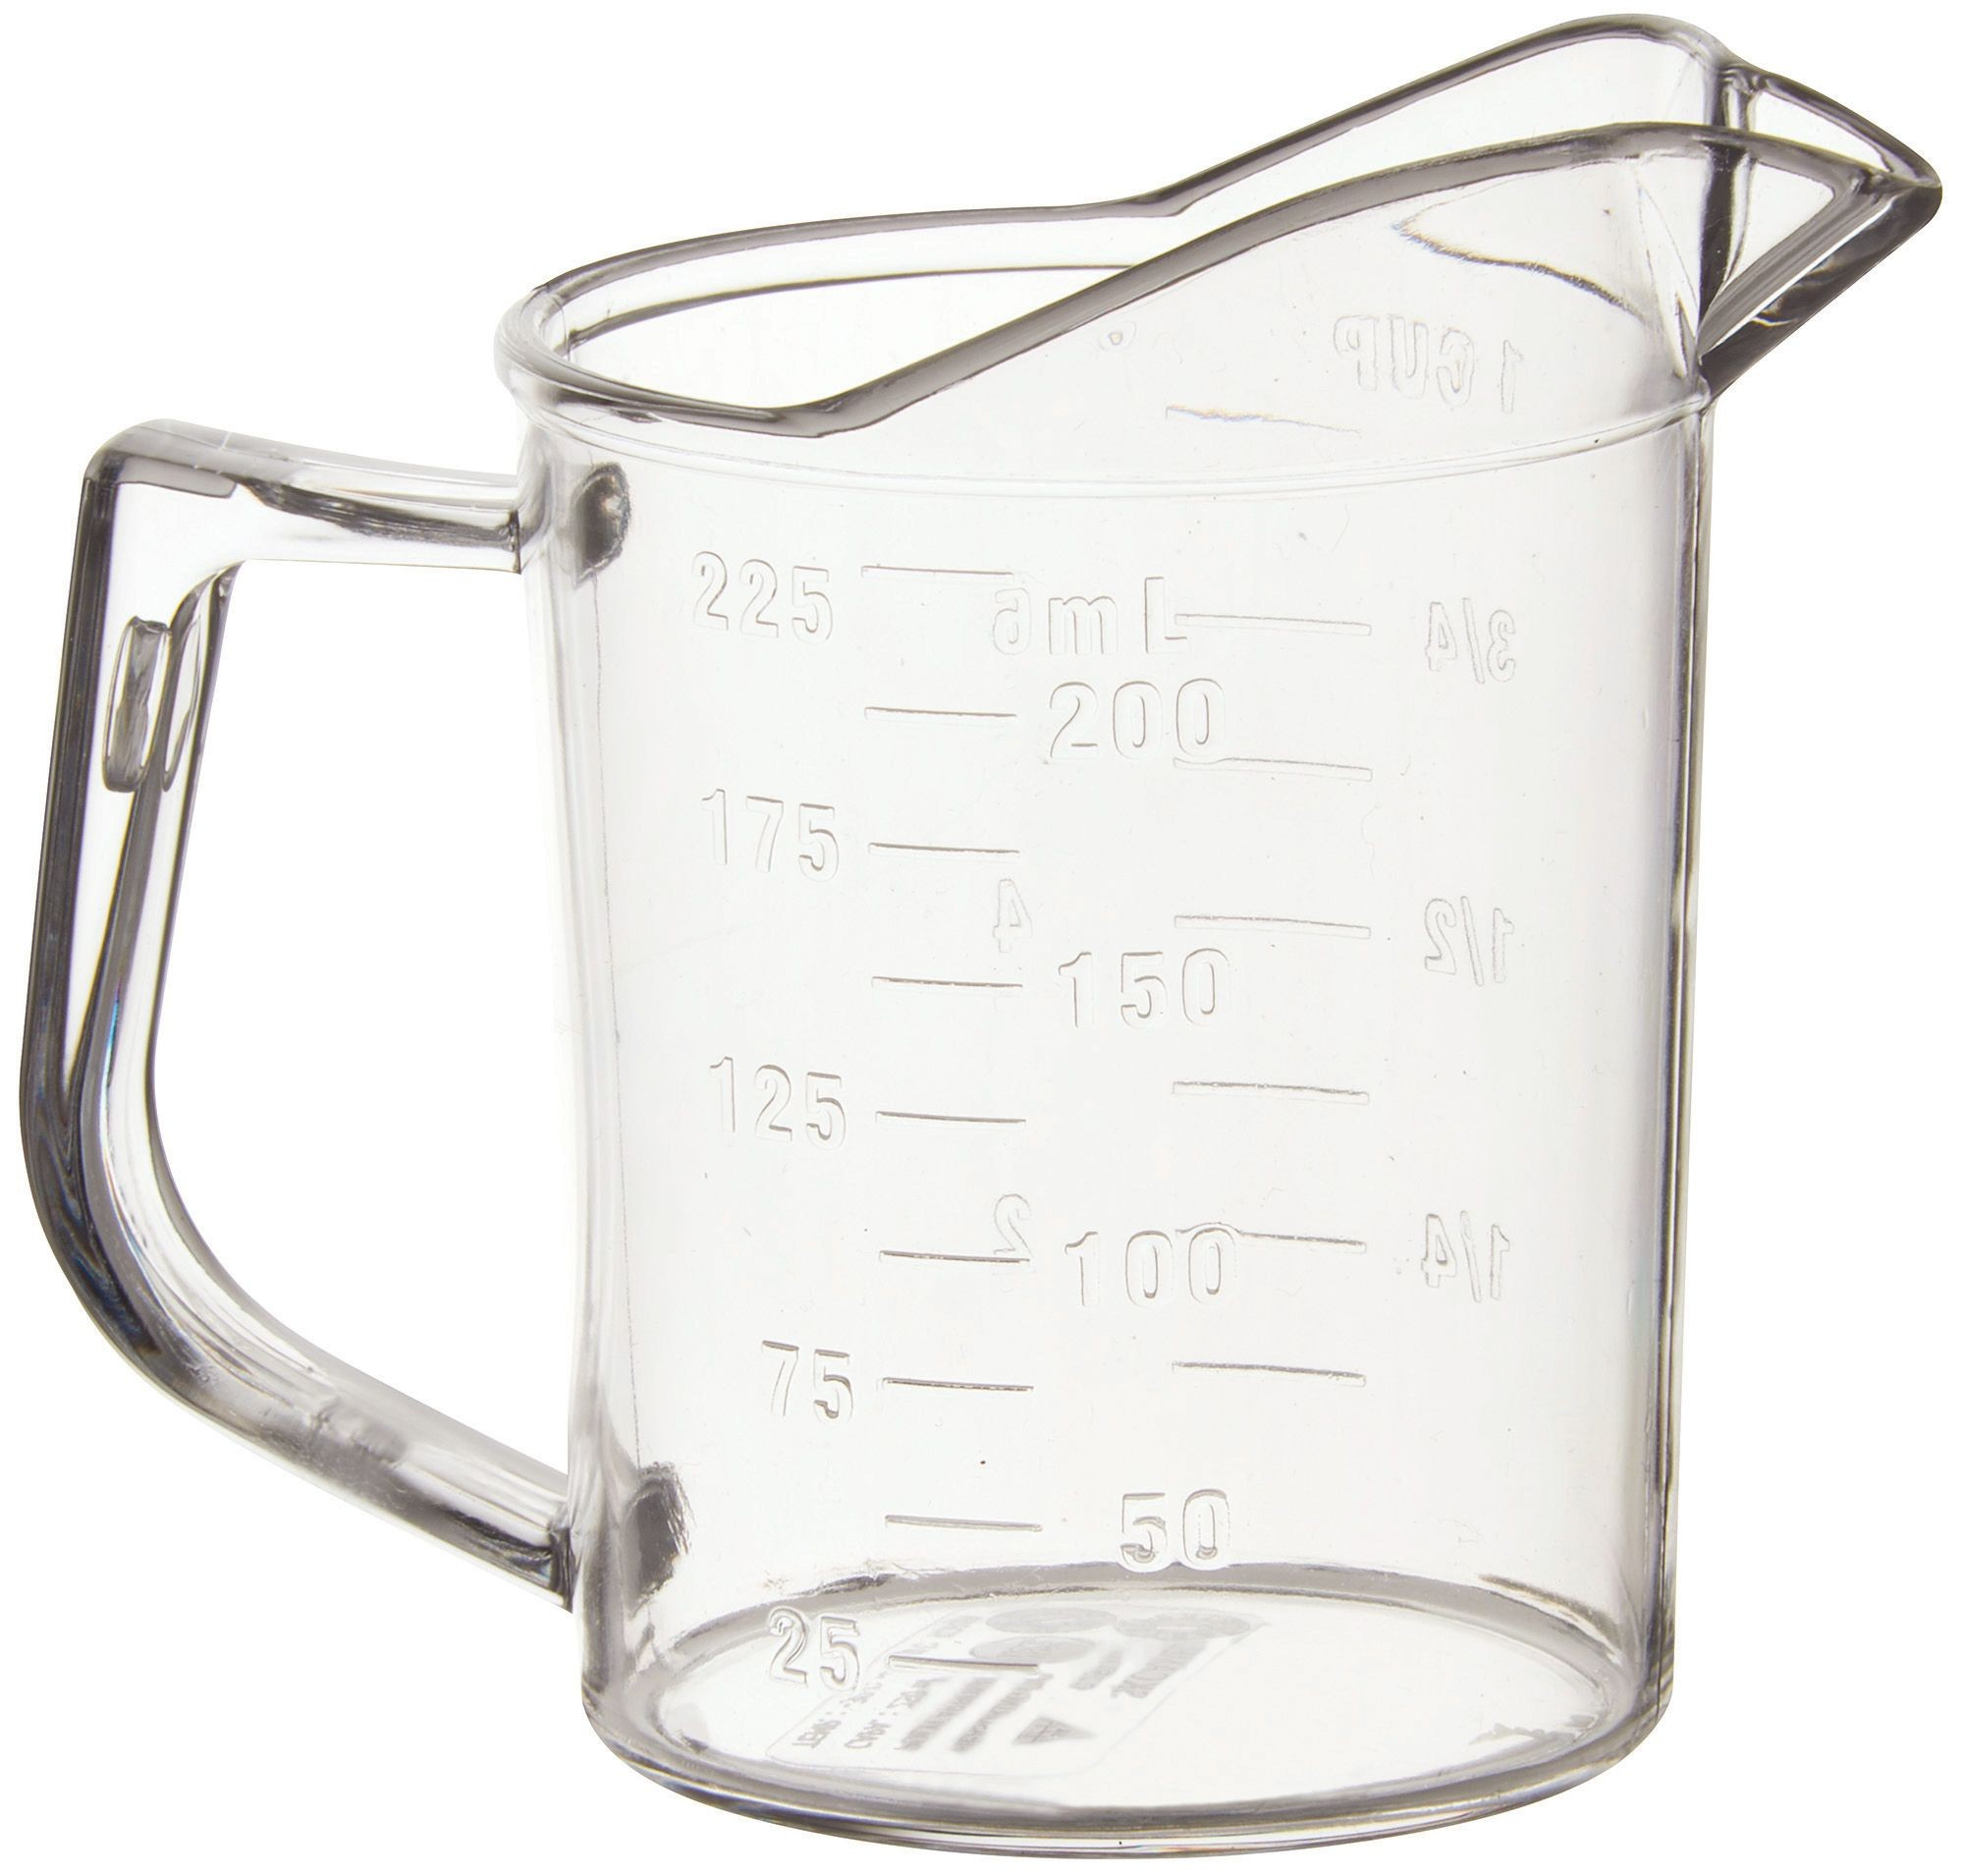 Winco PMU-25 Polycarbonate 1 Cup Measuring Cup